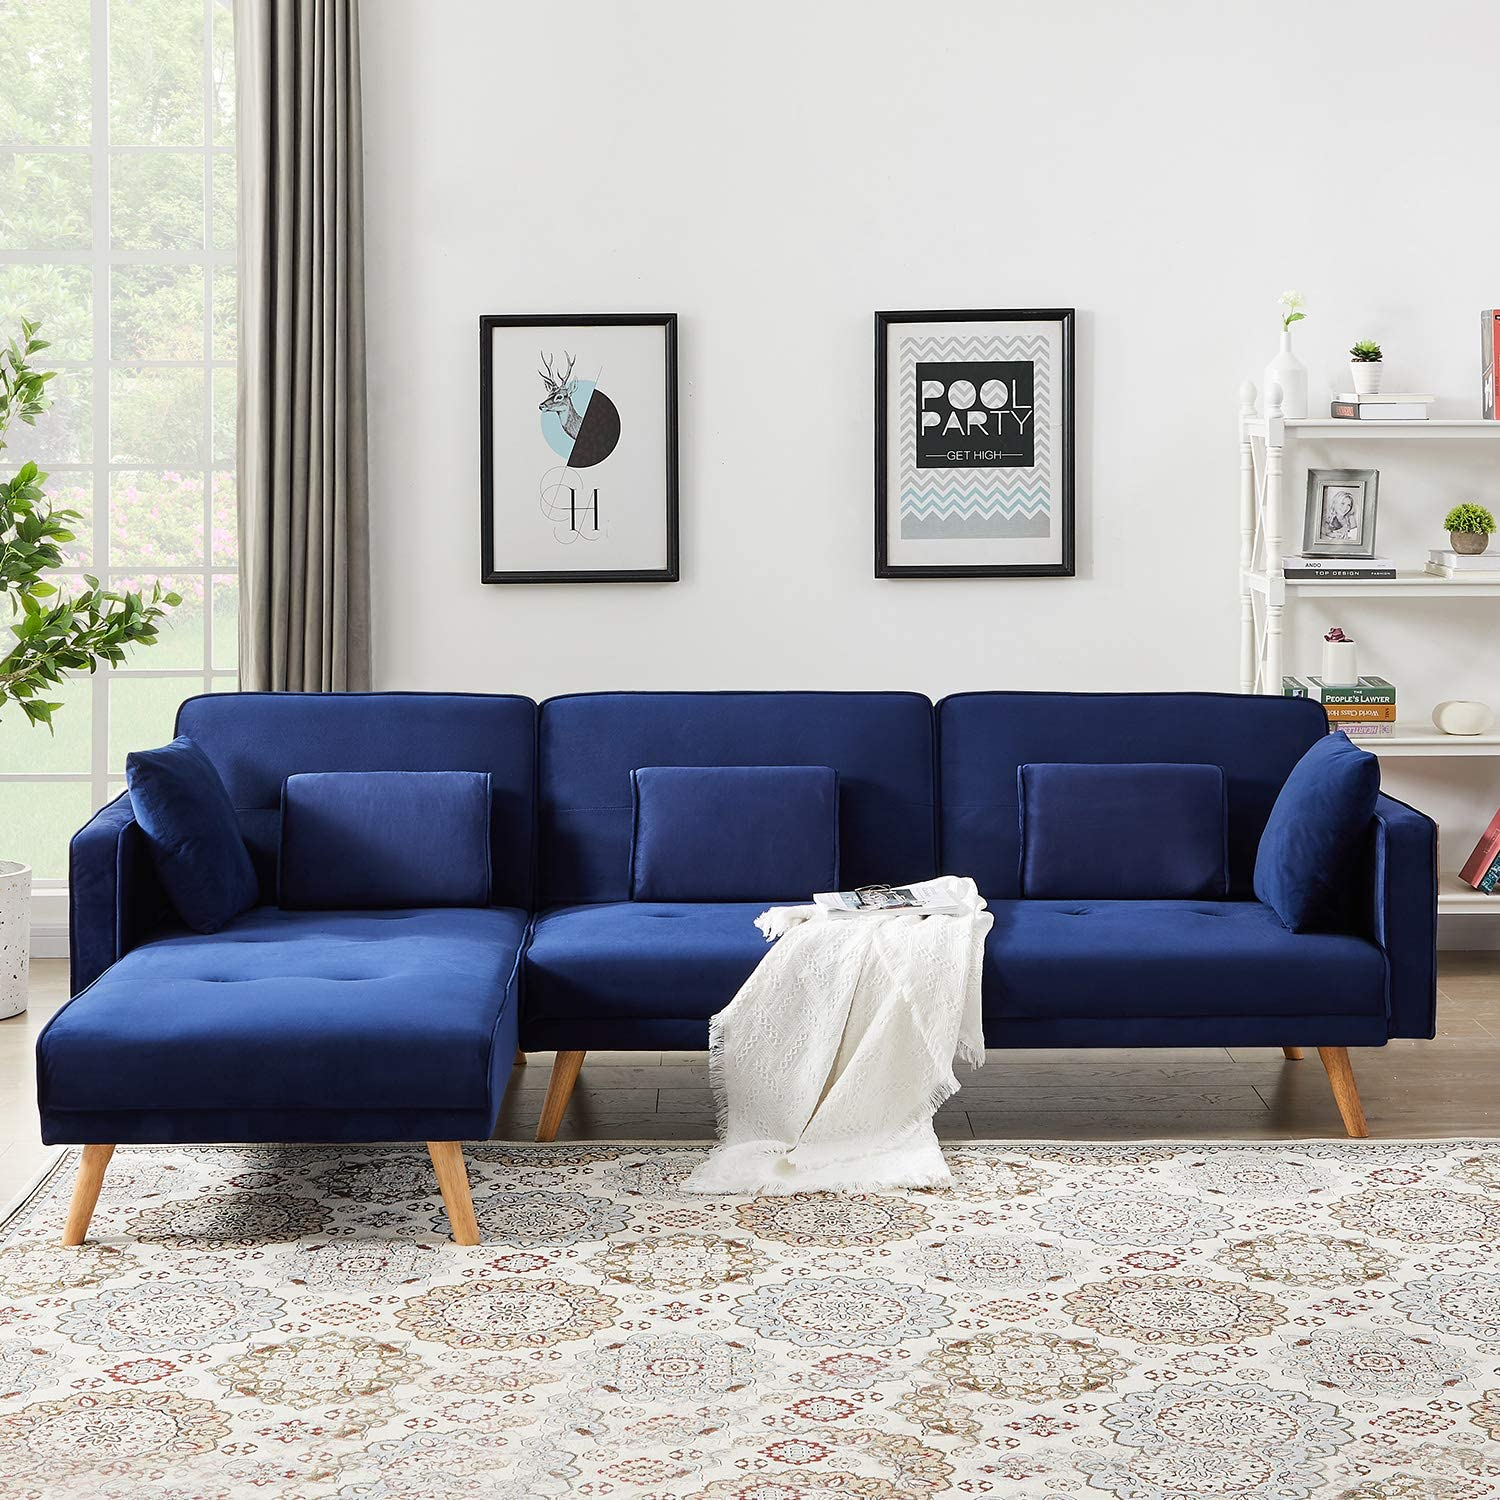 Amazon.com: DKLGG (Blue) Sectional Sofa Convertible Couch L-Shape Chaise Lounge For Living Room Home Furniture: Furniture & Decor